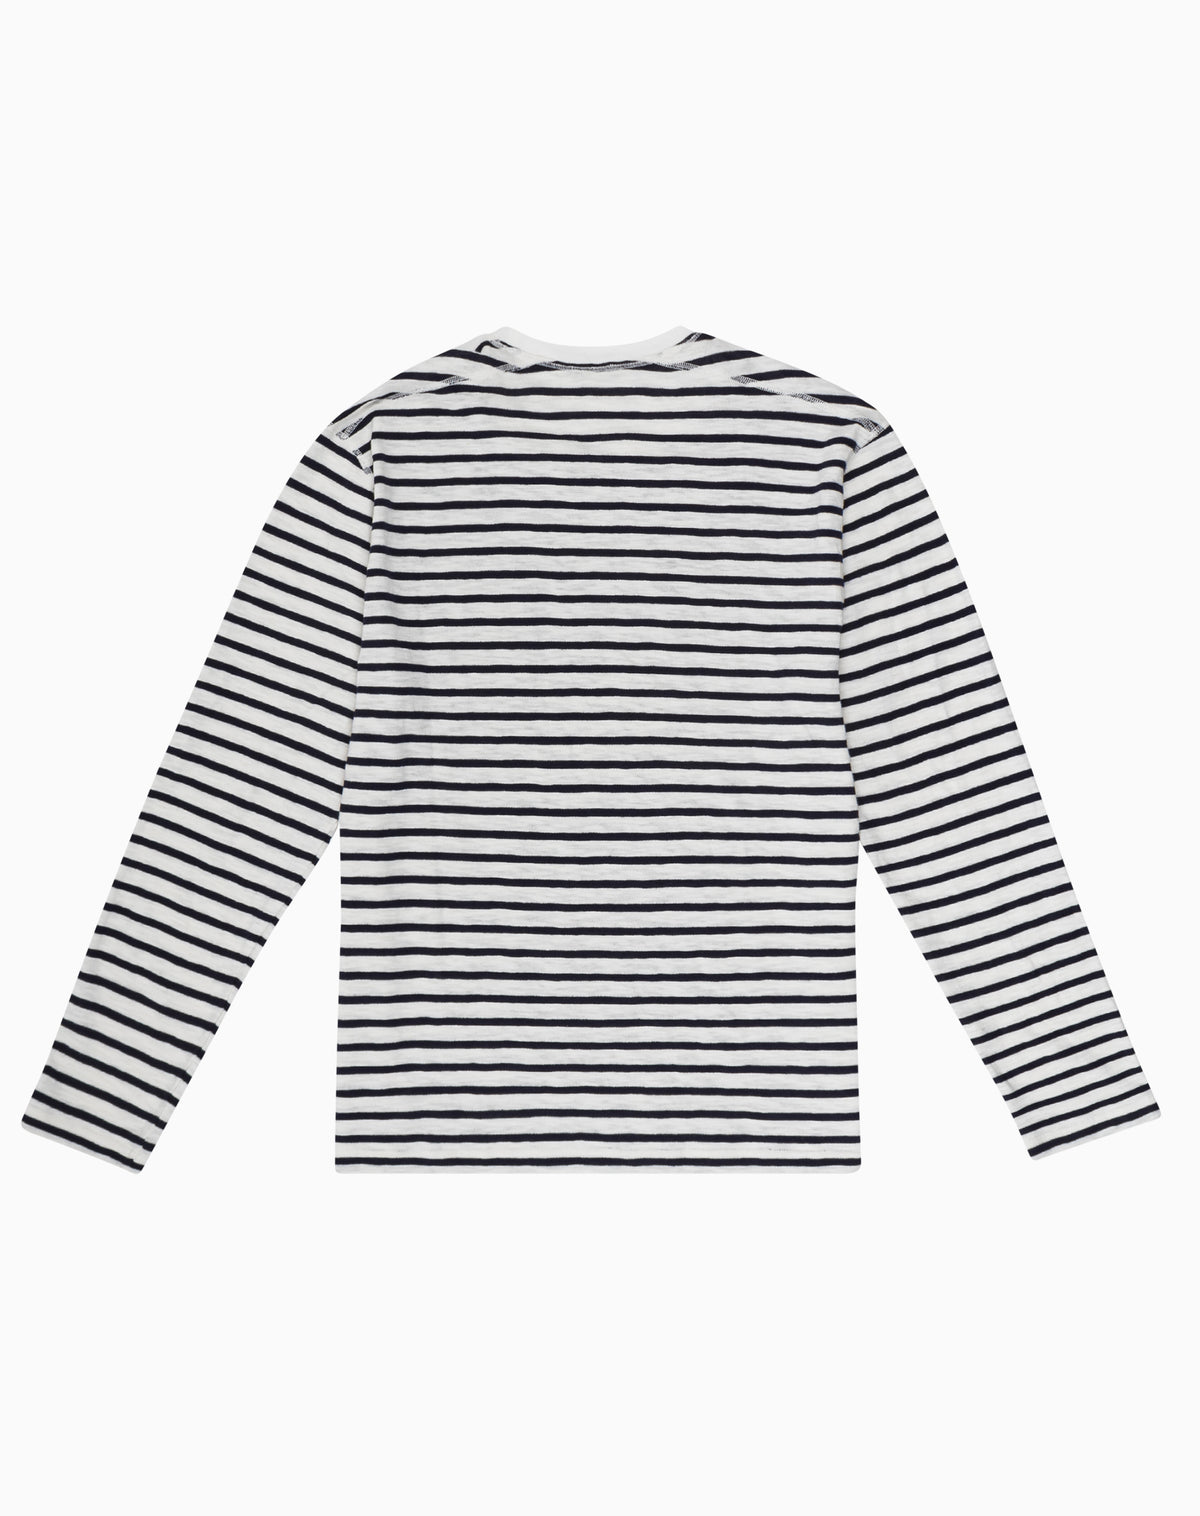 Long Sleeve Striper in Navy & White